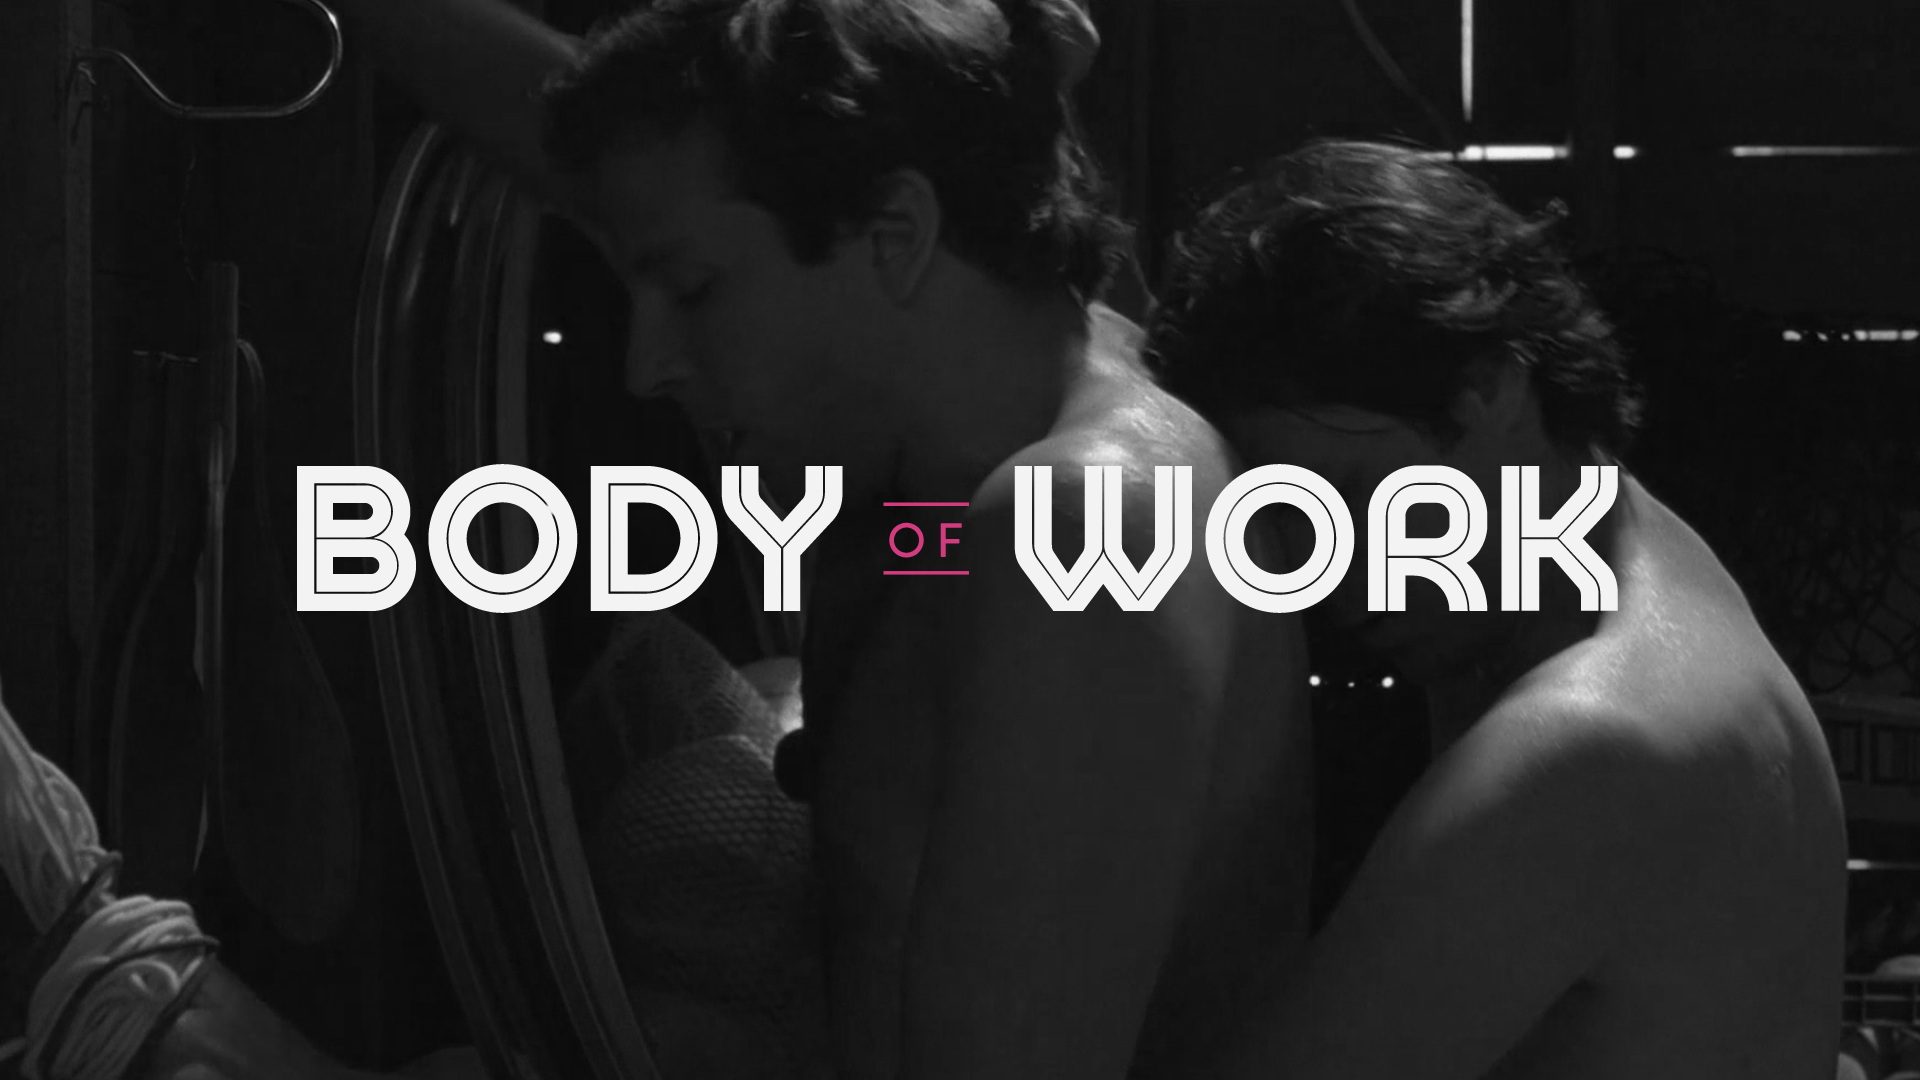 Bodyofwork bradleycooper 00 00 02 21 still002 nude preview image